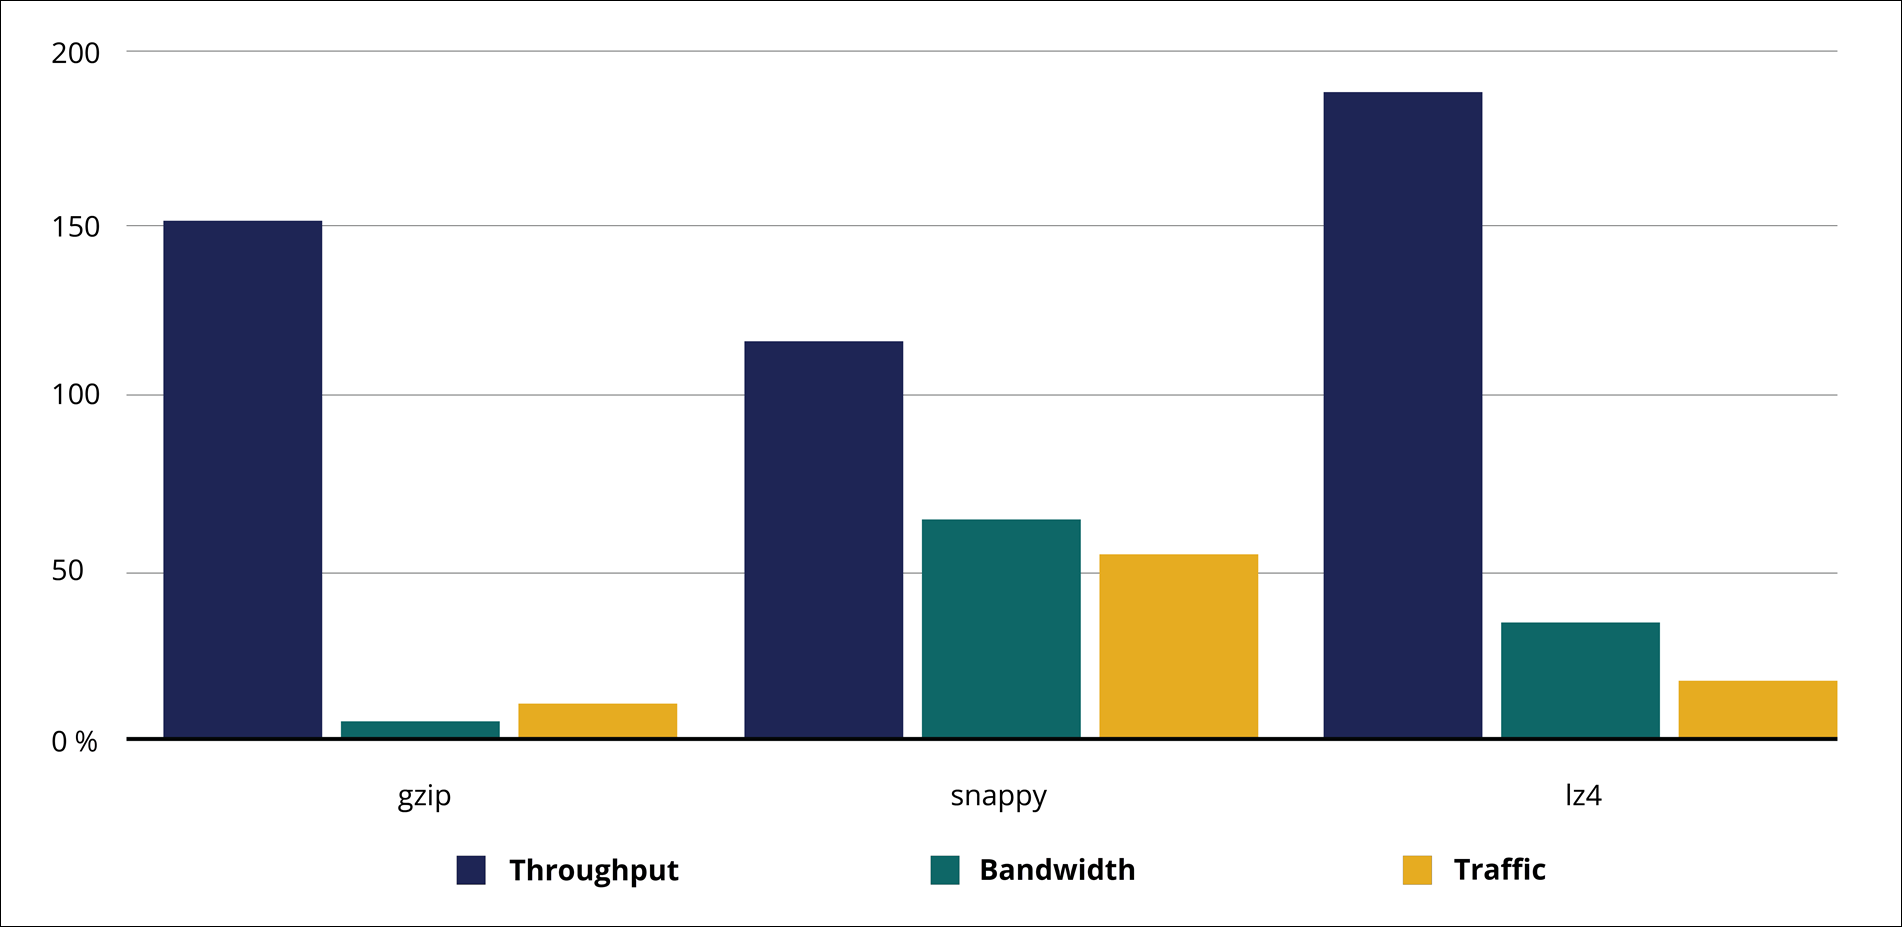 The bar chart shows that LZ4 has the highest throughput. Snappy has the                         highest bandwidth and traffic.